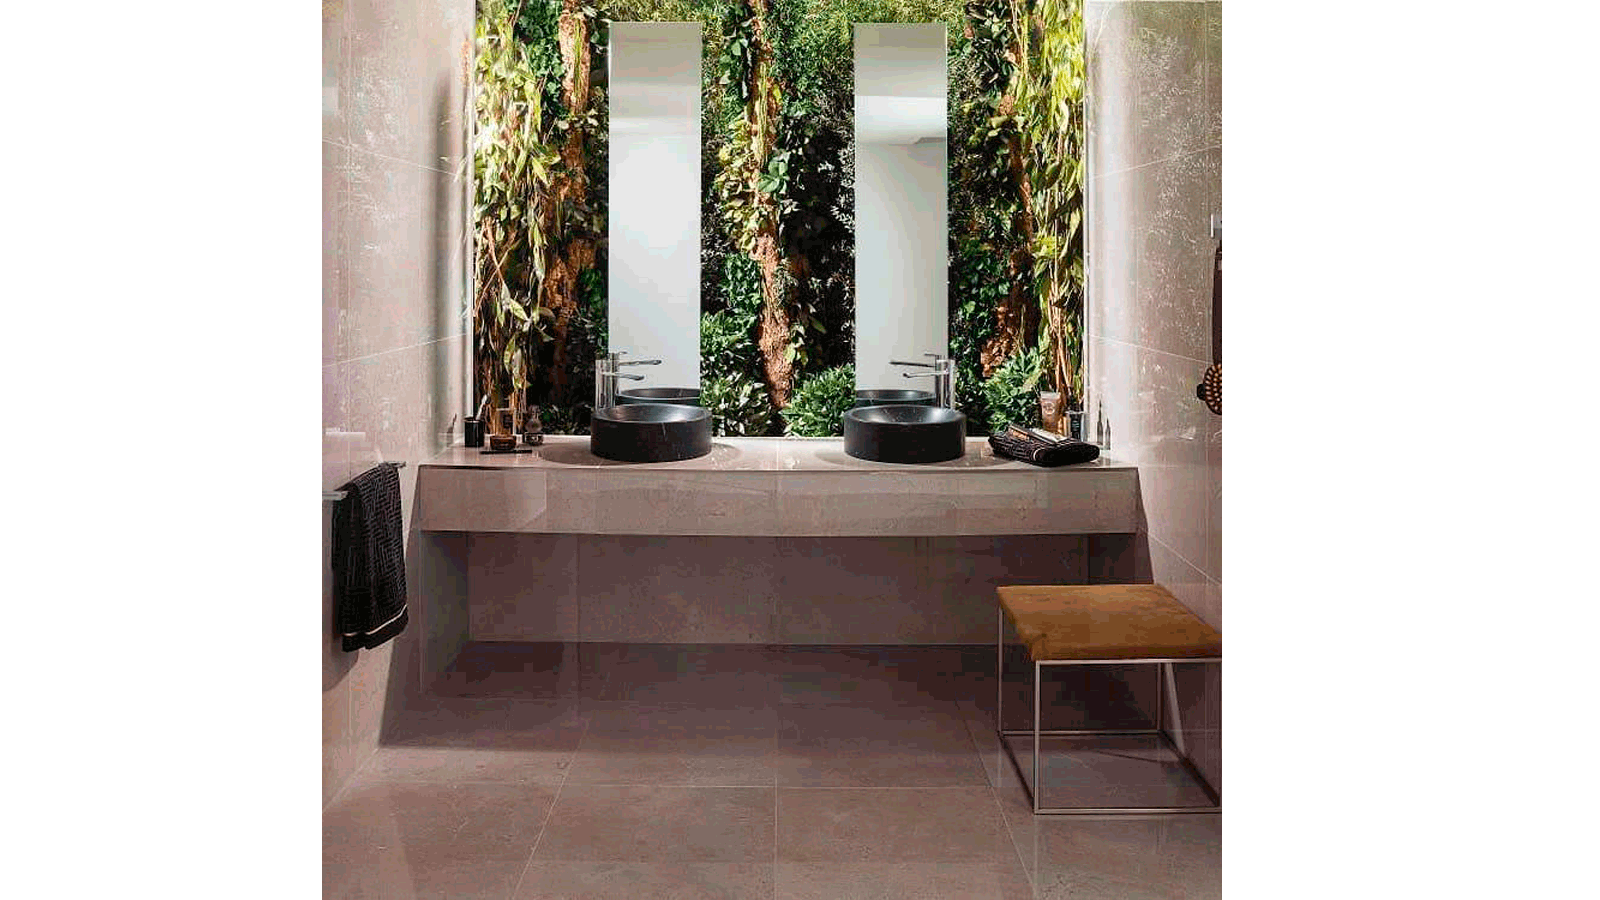 Greenarea_decoracion_vegetal_oficinas_Viokox-2c